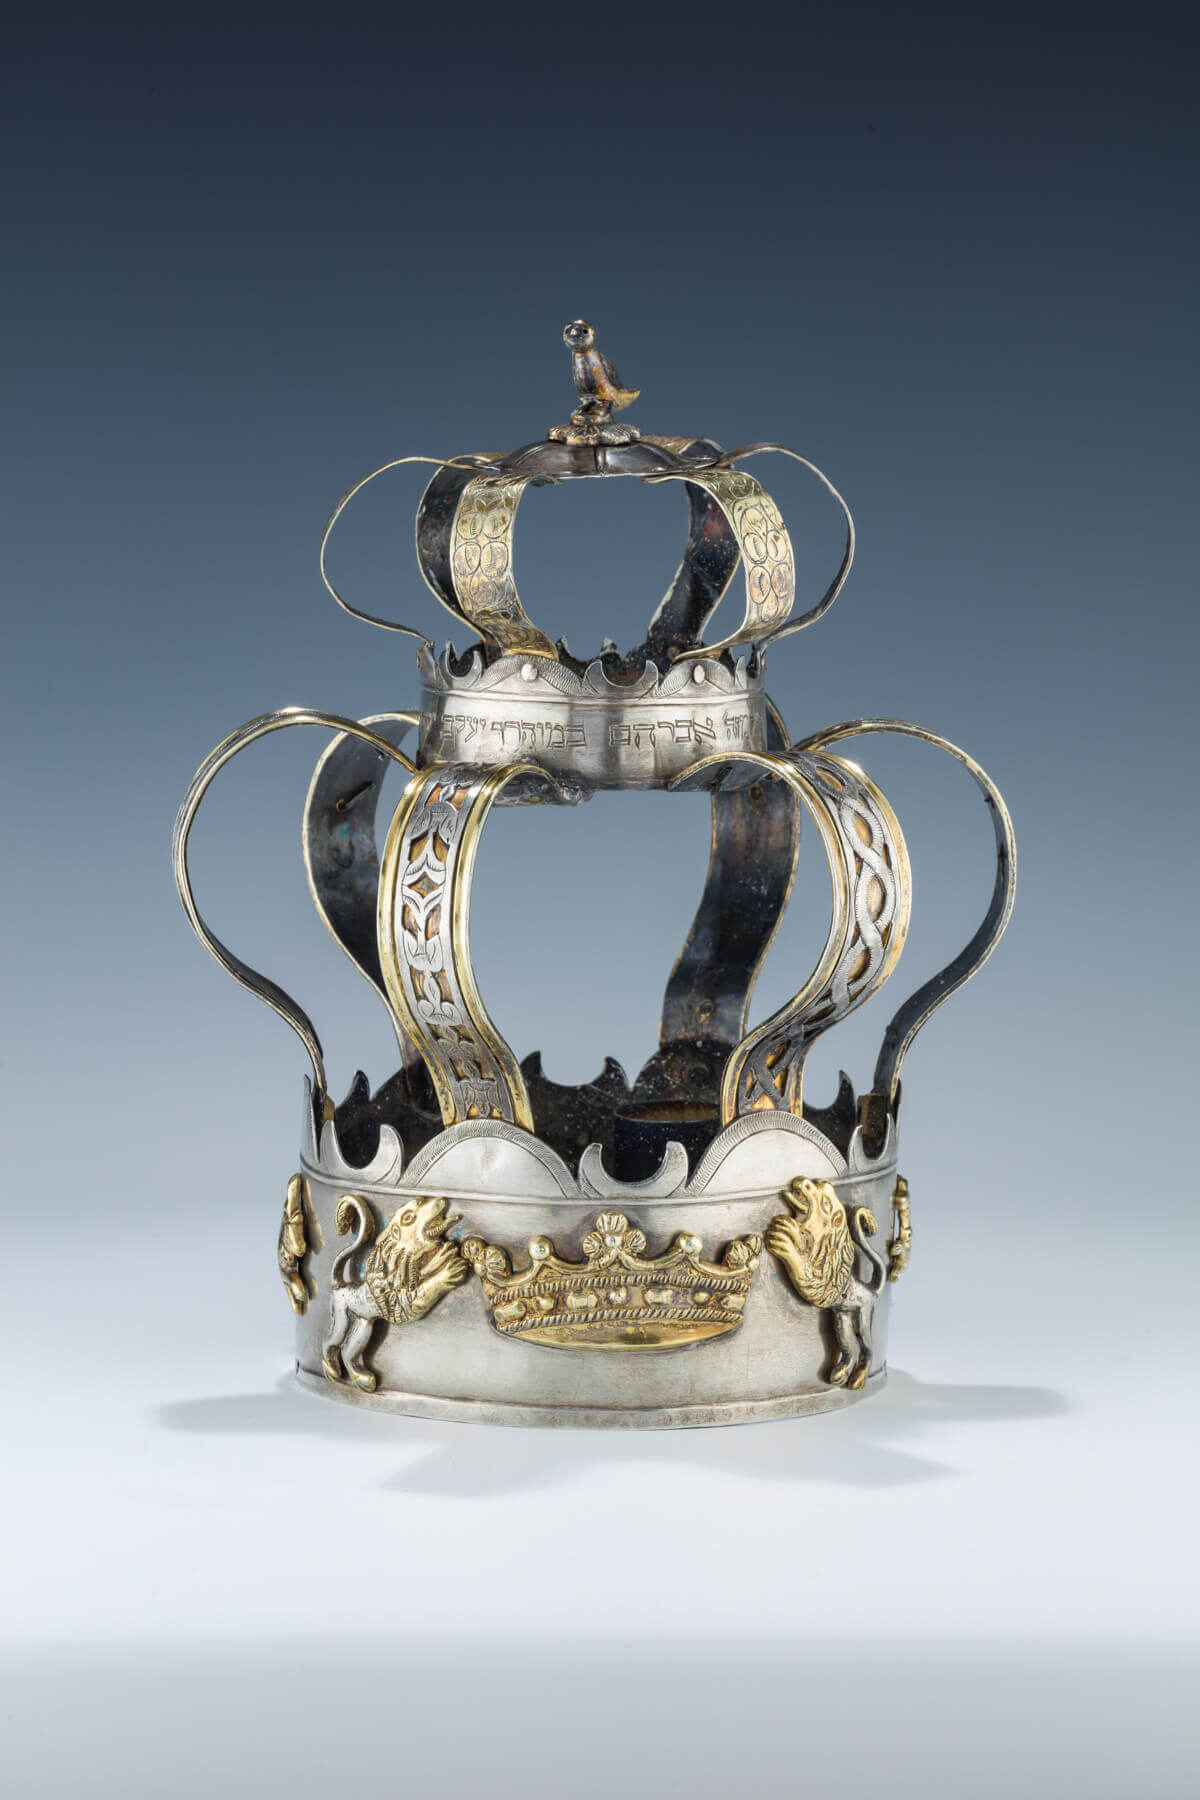 143. AN EARLY PARCEL GILT SILVER TORAH CROWN